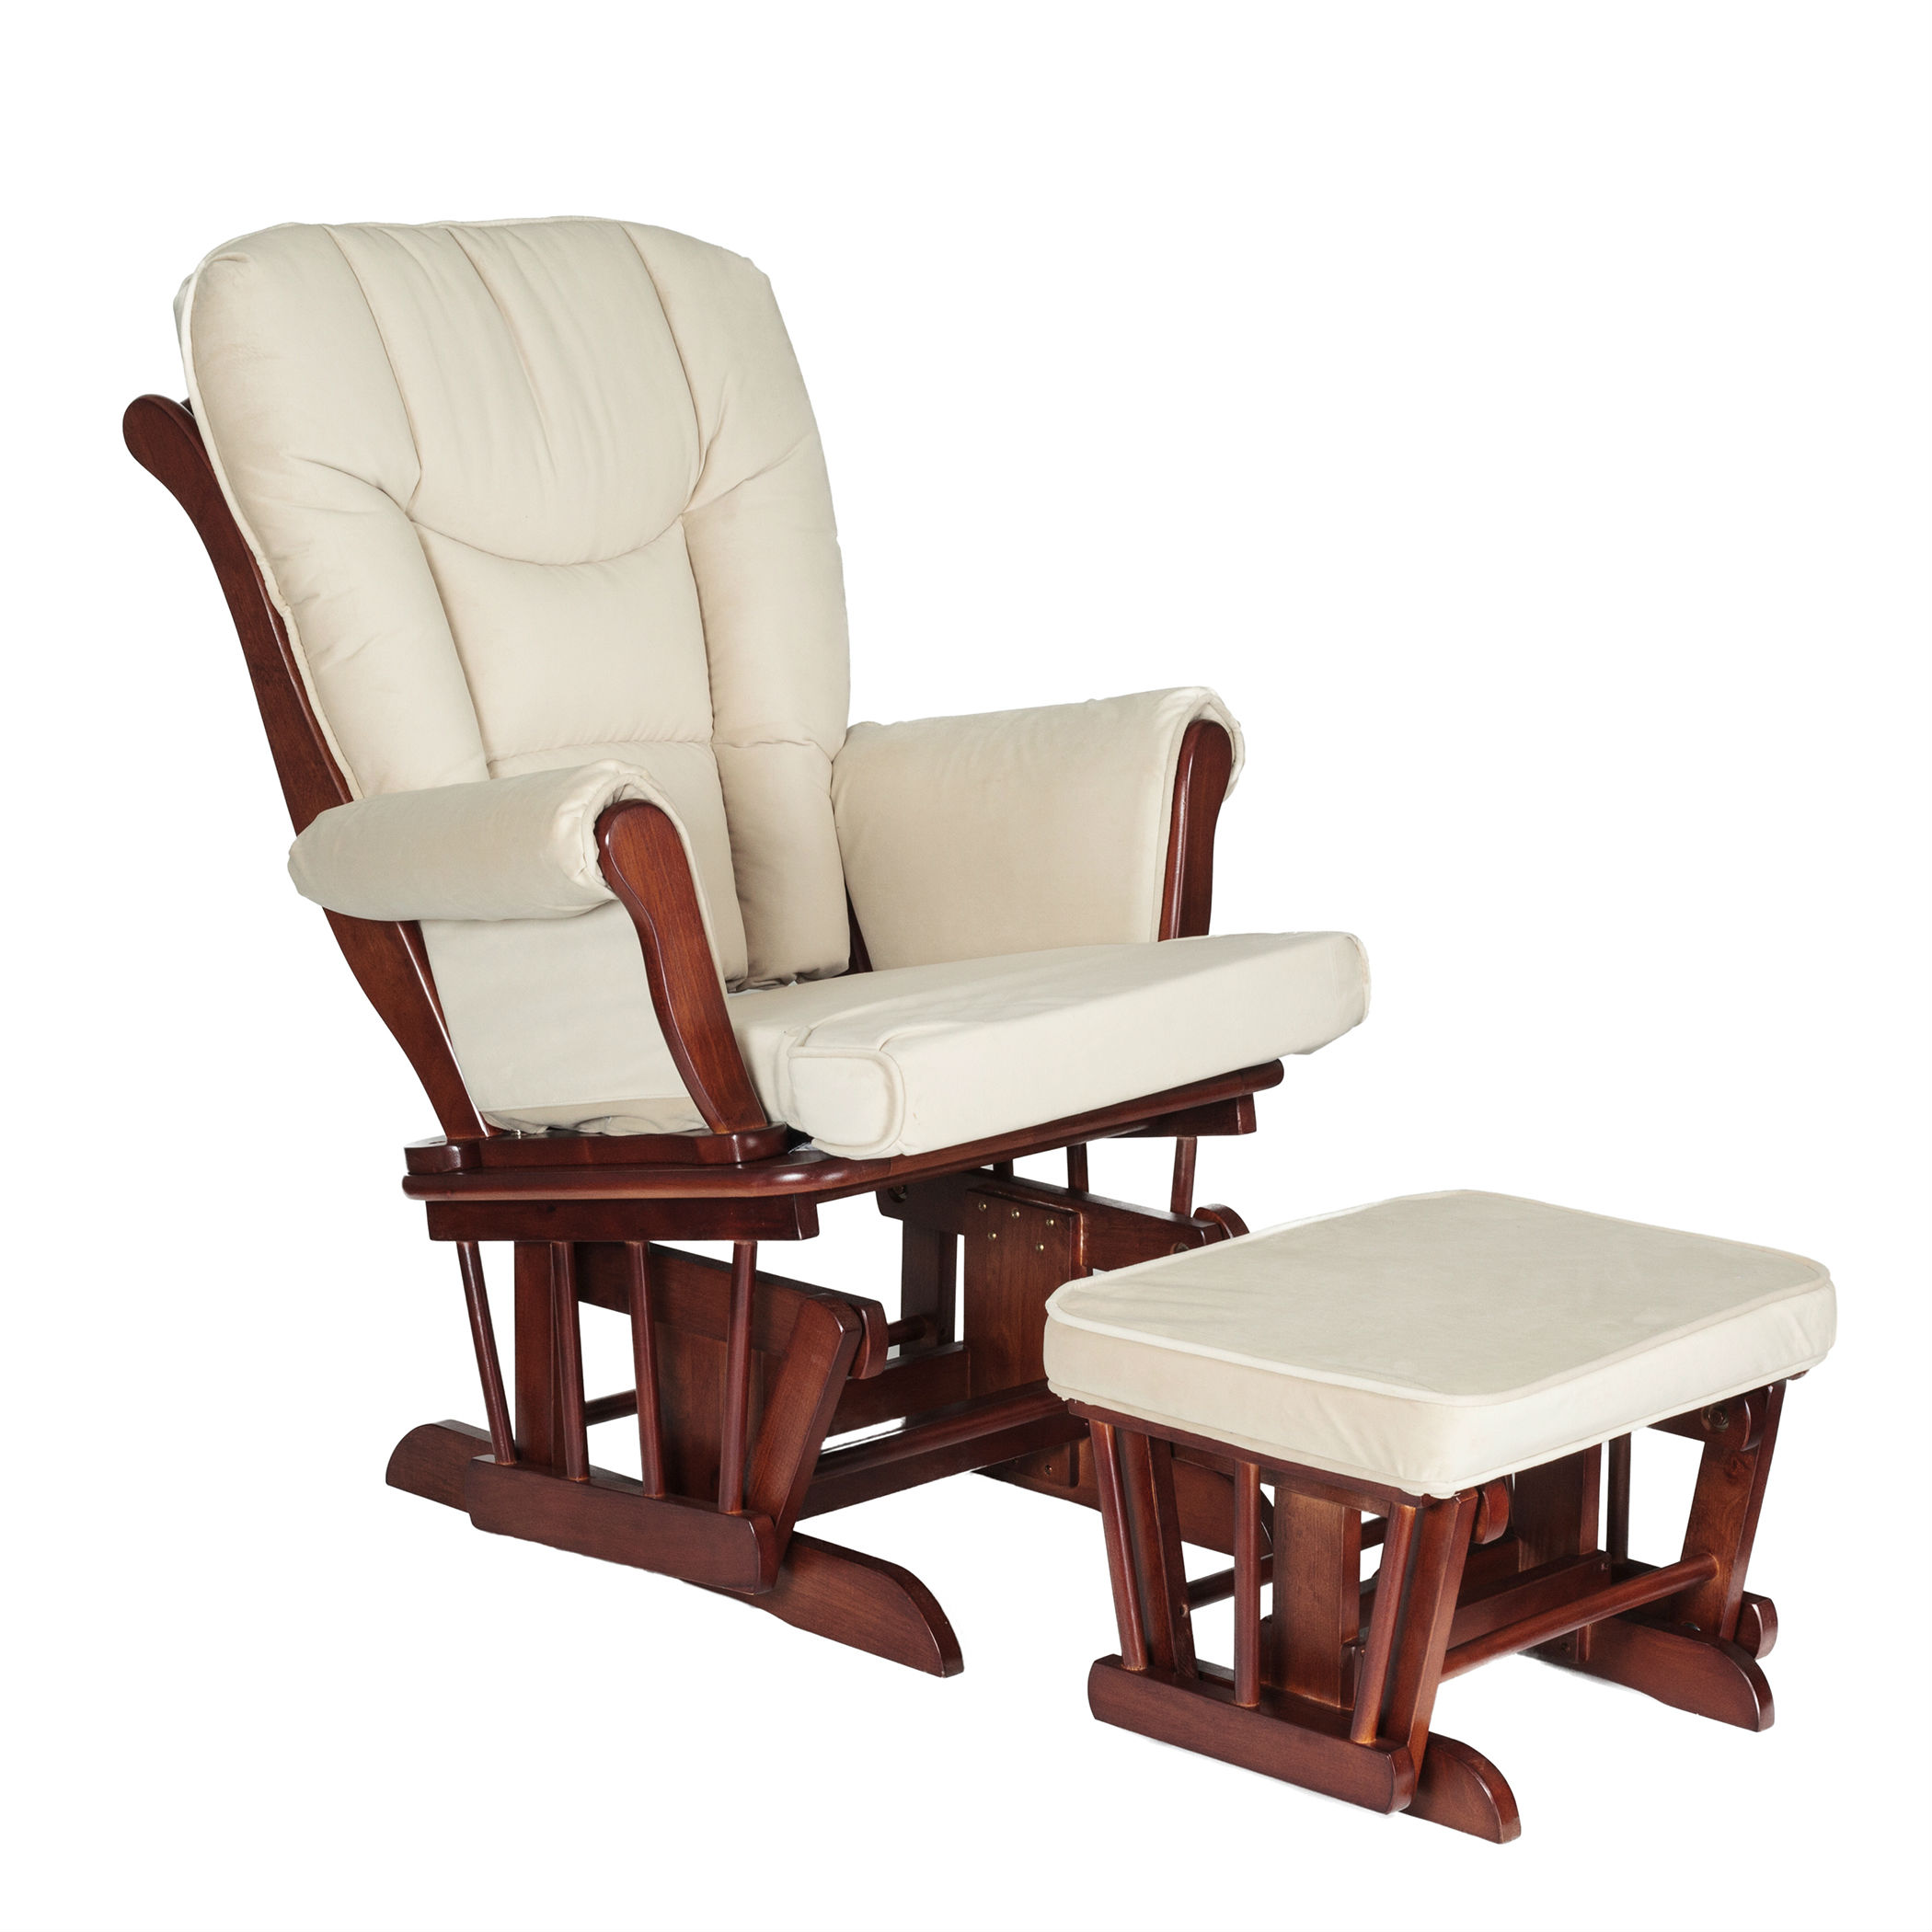 Sleigh Glider Chair Gliders AFG Baby Furniture